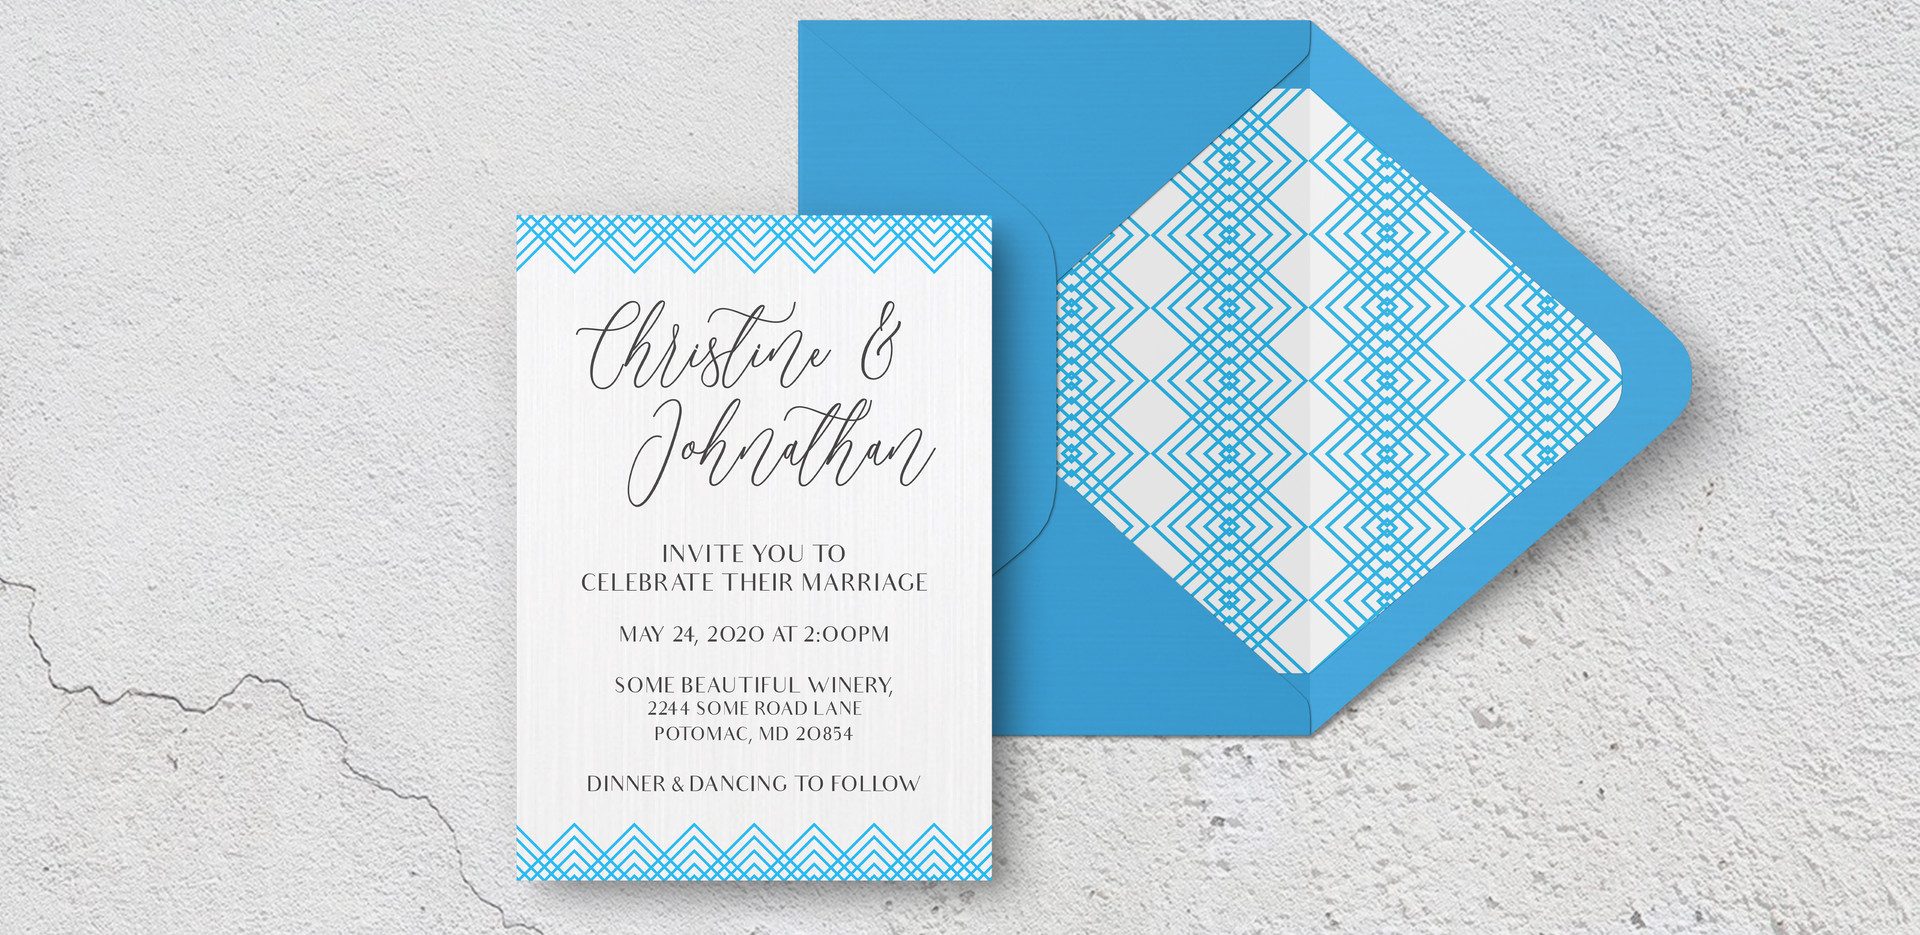 Invite + Envelope